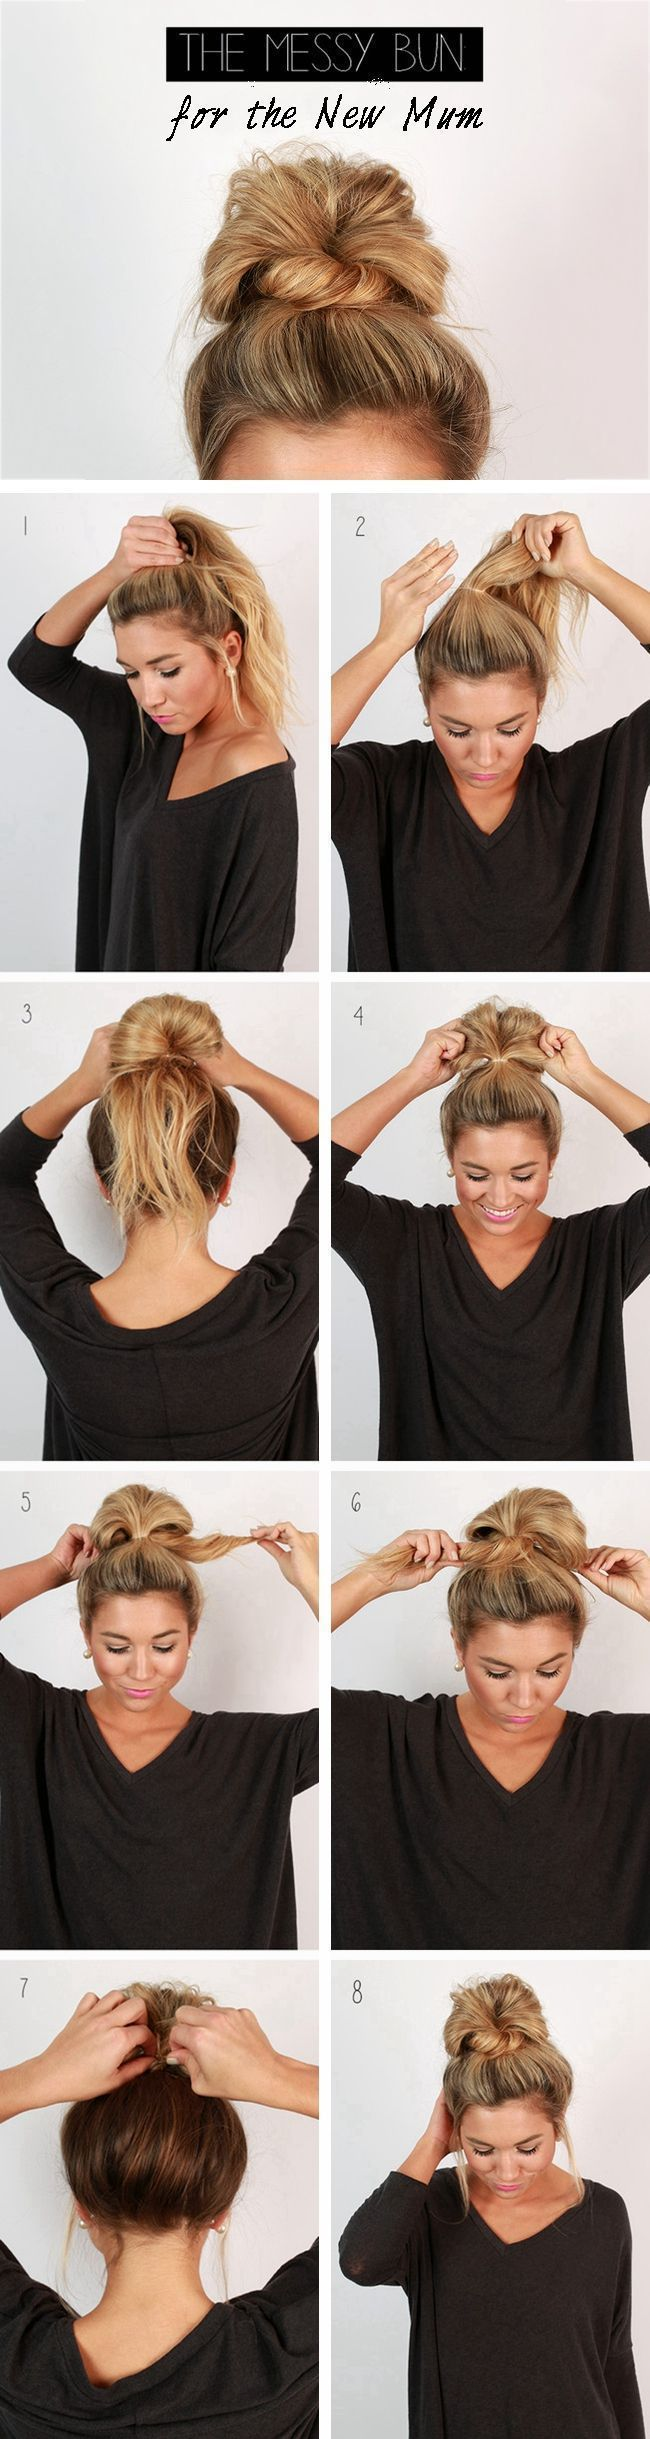 Updo ideas easy updo hairstyles with directions hair pinterest